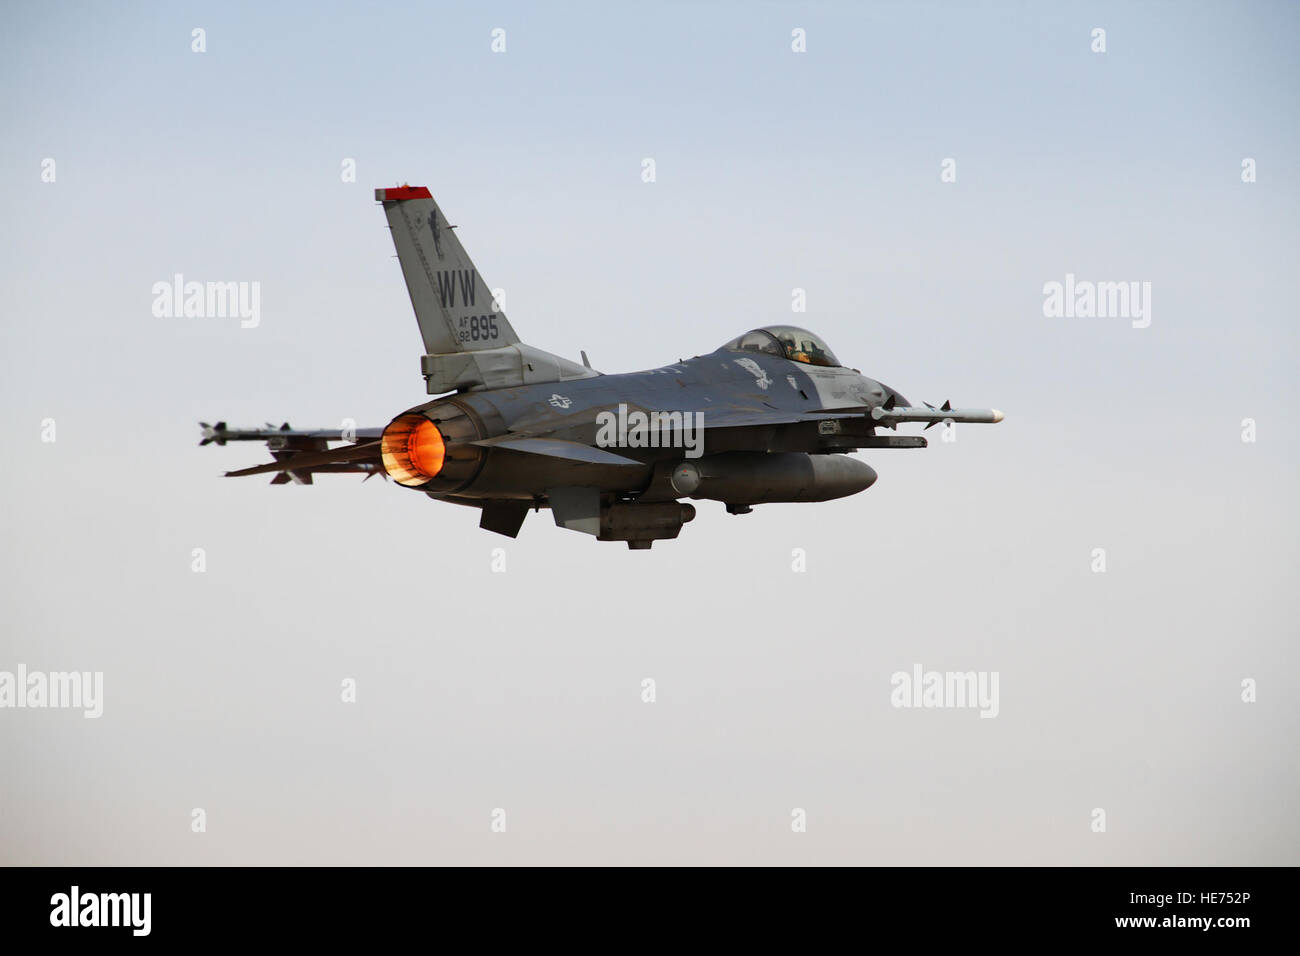 An F-16 Fighting Falcon from the 13th Fighter Squadron at Misawa Air Base, Japan, takes to the skies over an air - Stock Image